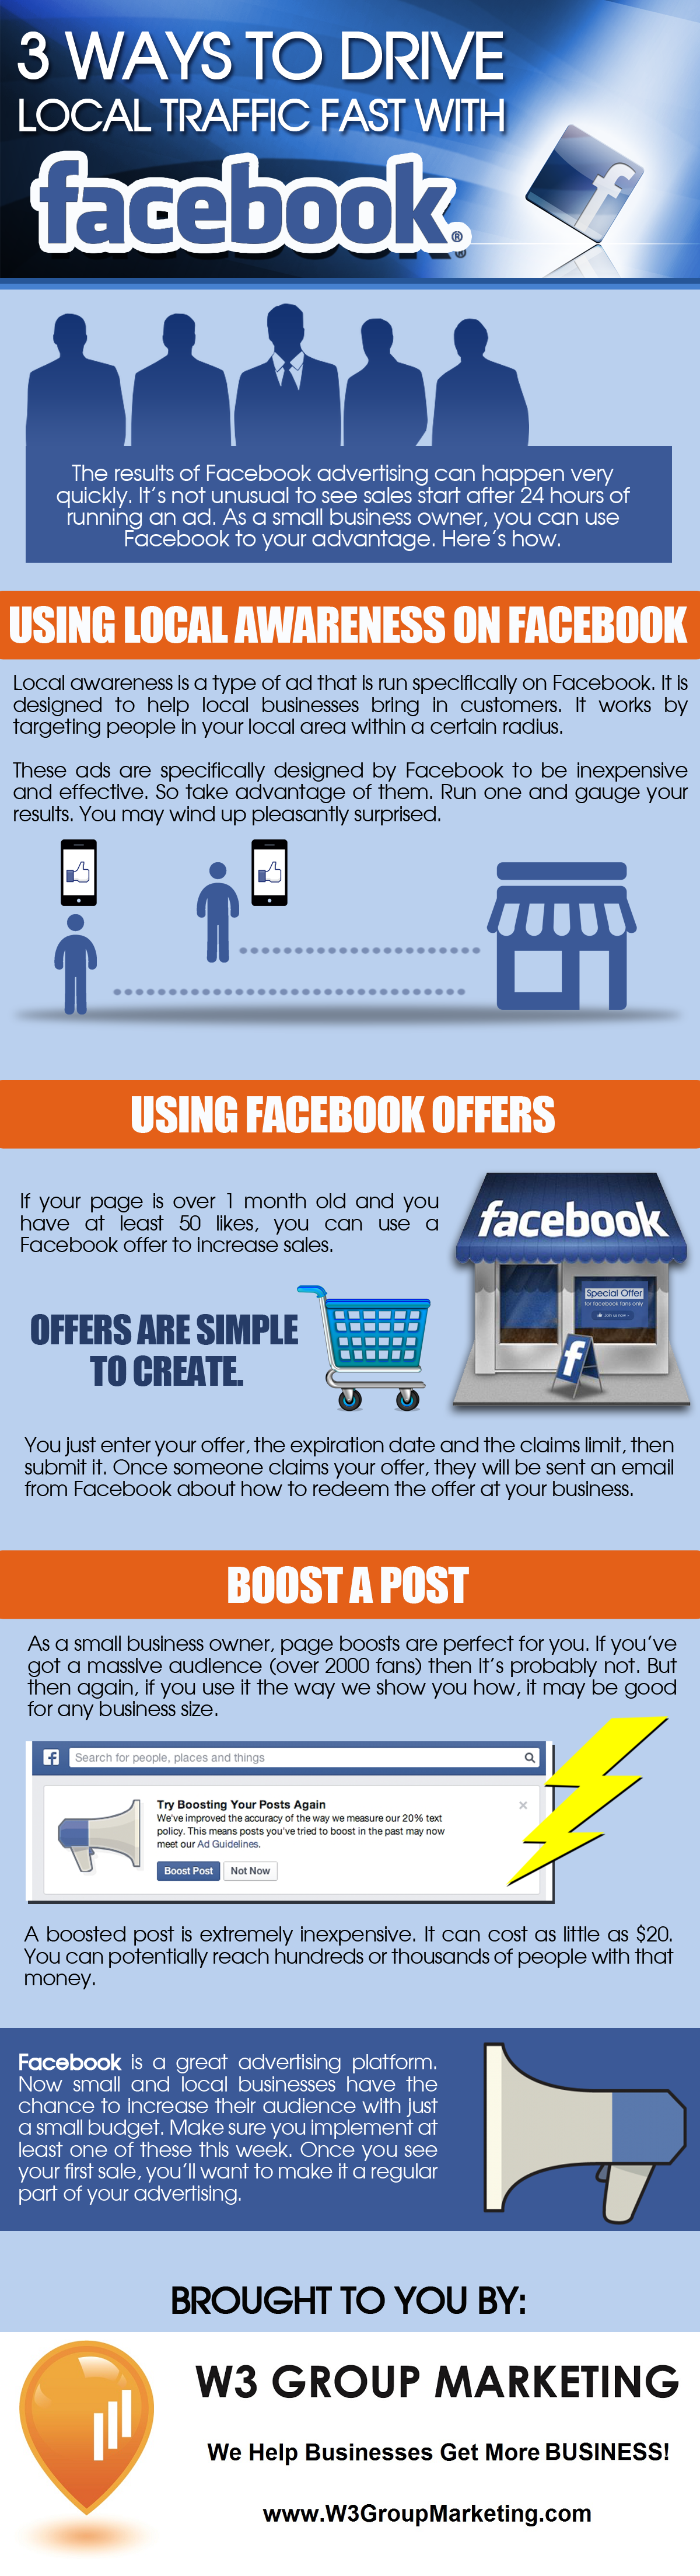 [Infographic] Three Ways to Drive Local Traffic Fast with Facebook Advertising